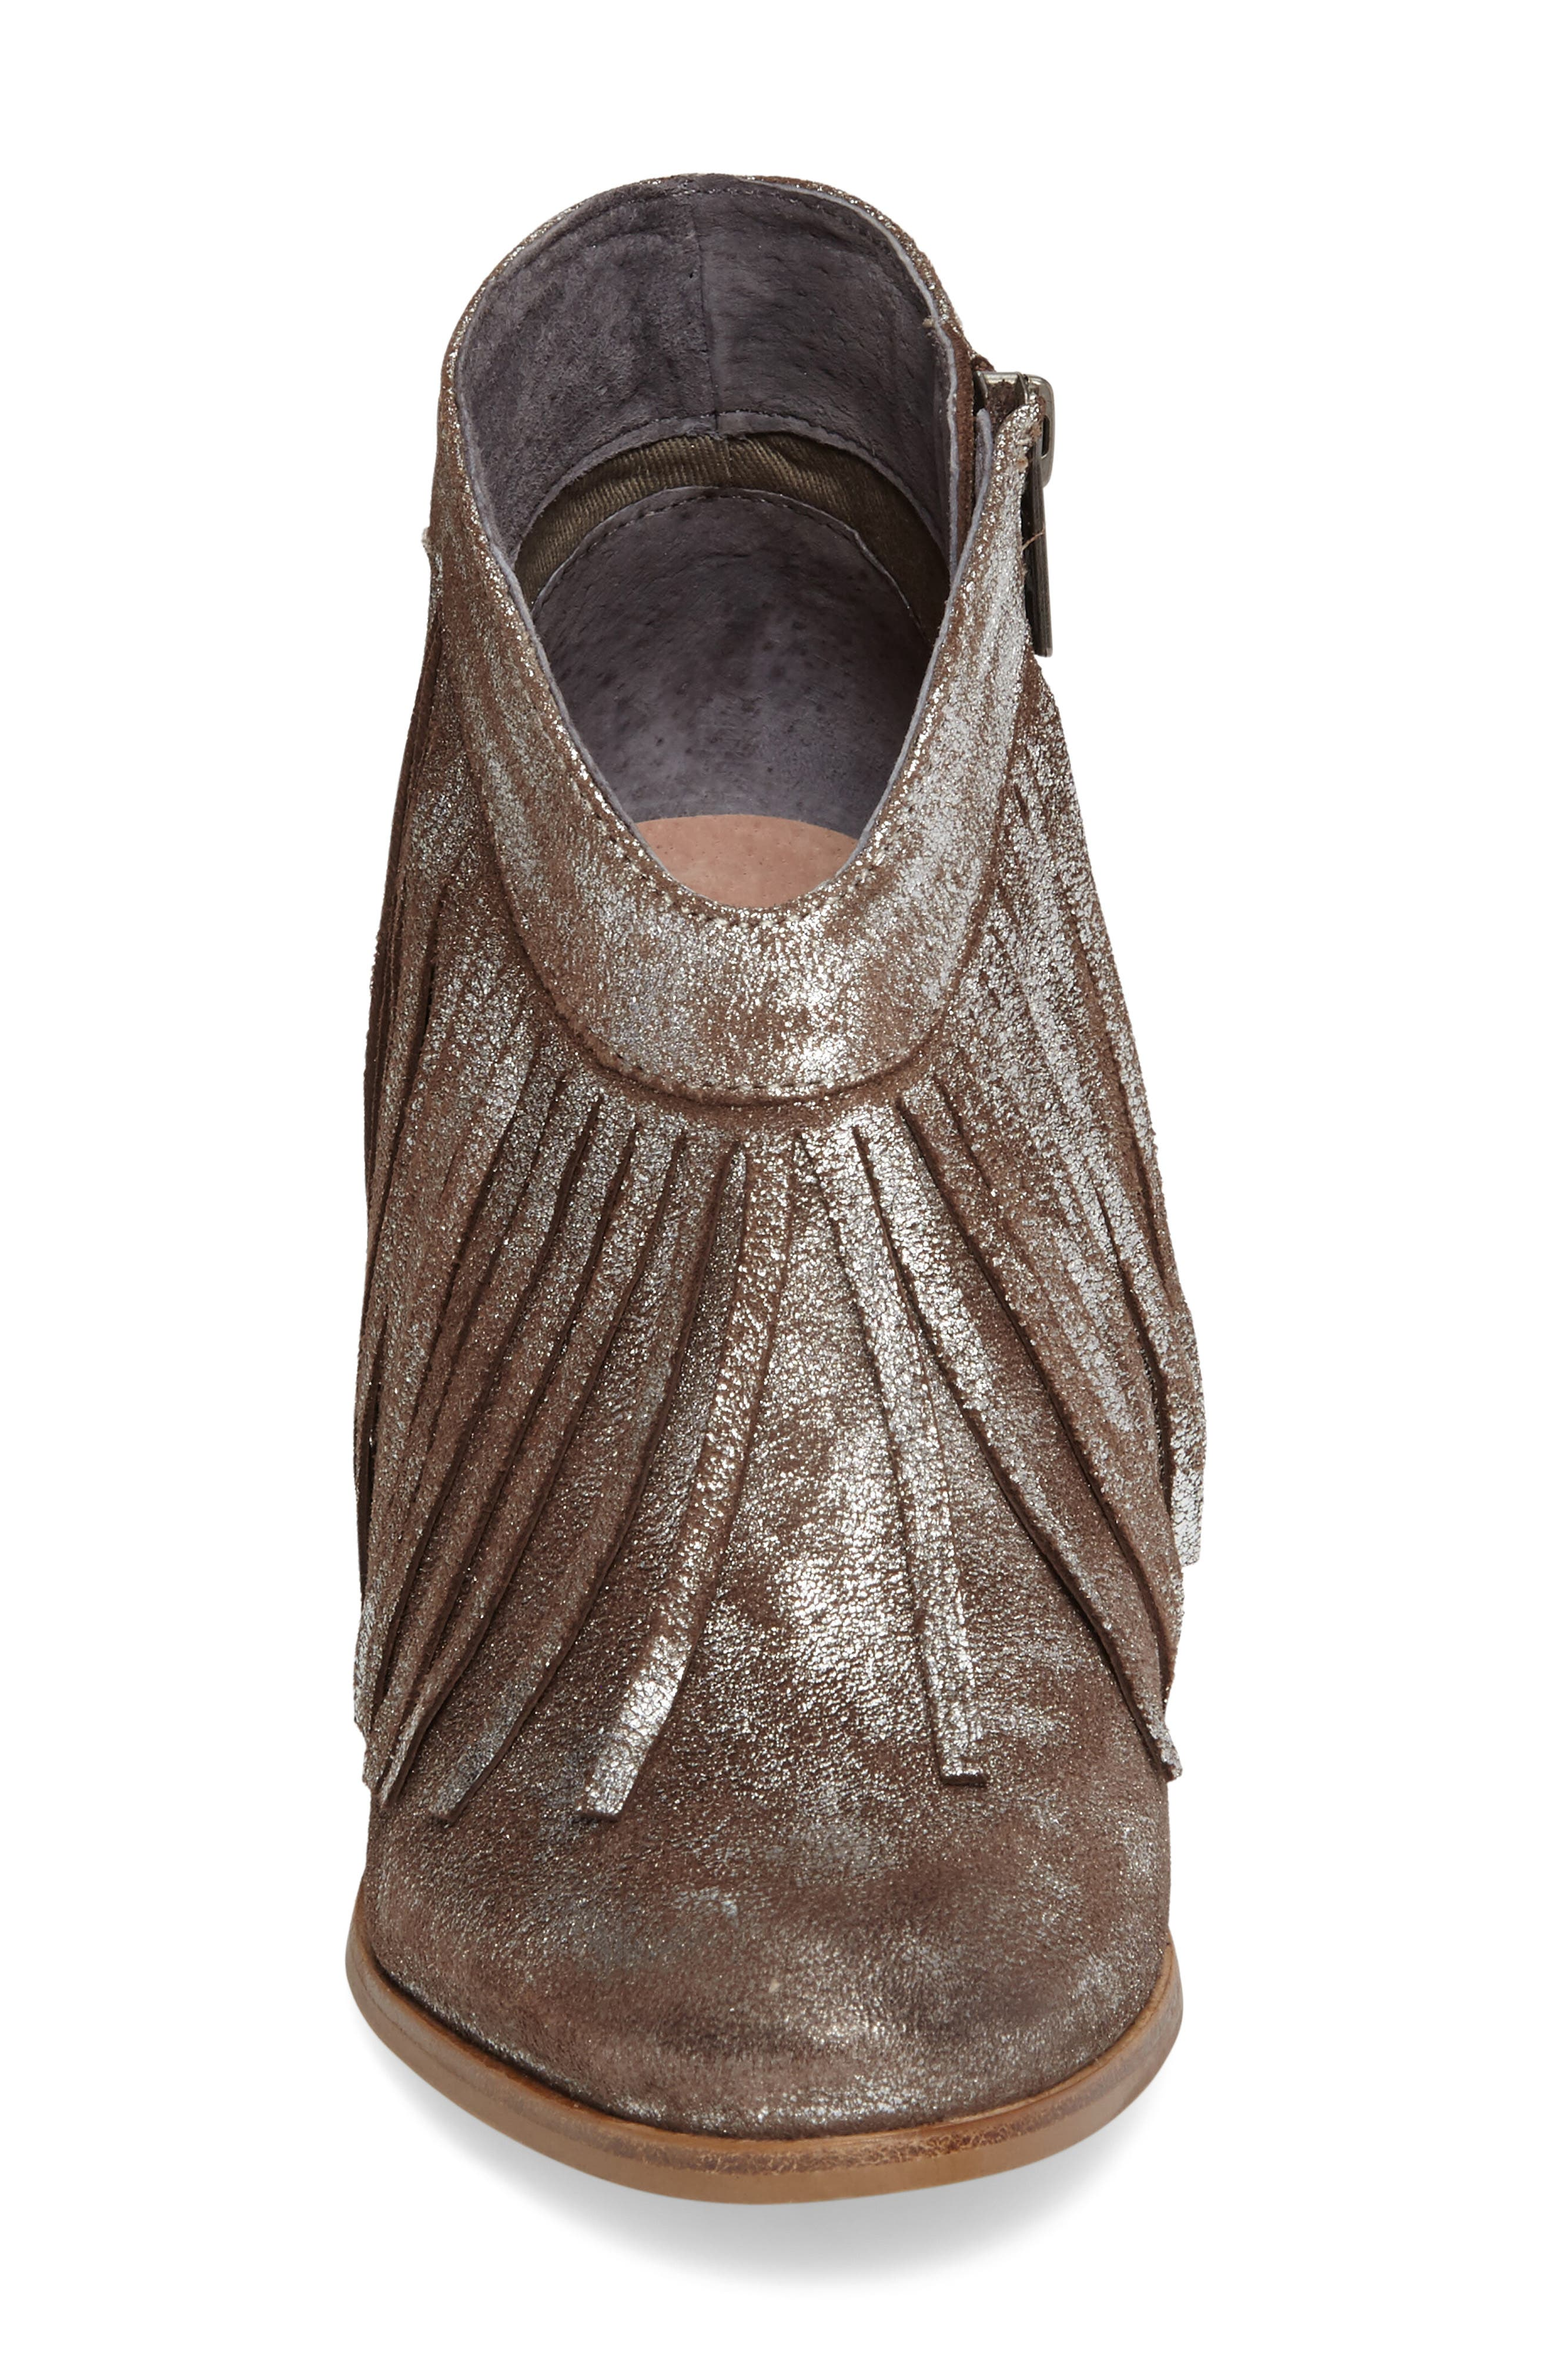 Unbridled Layla Fringed Bootie,                             Alternate thumbnail 3, color,                             040